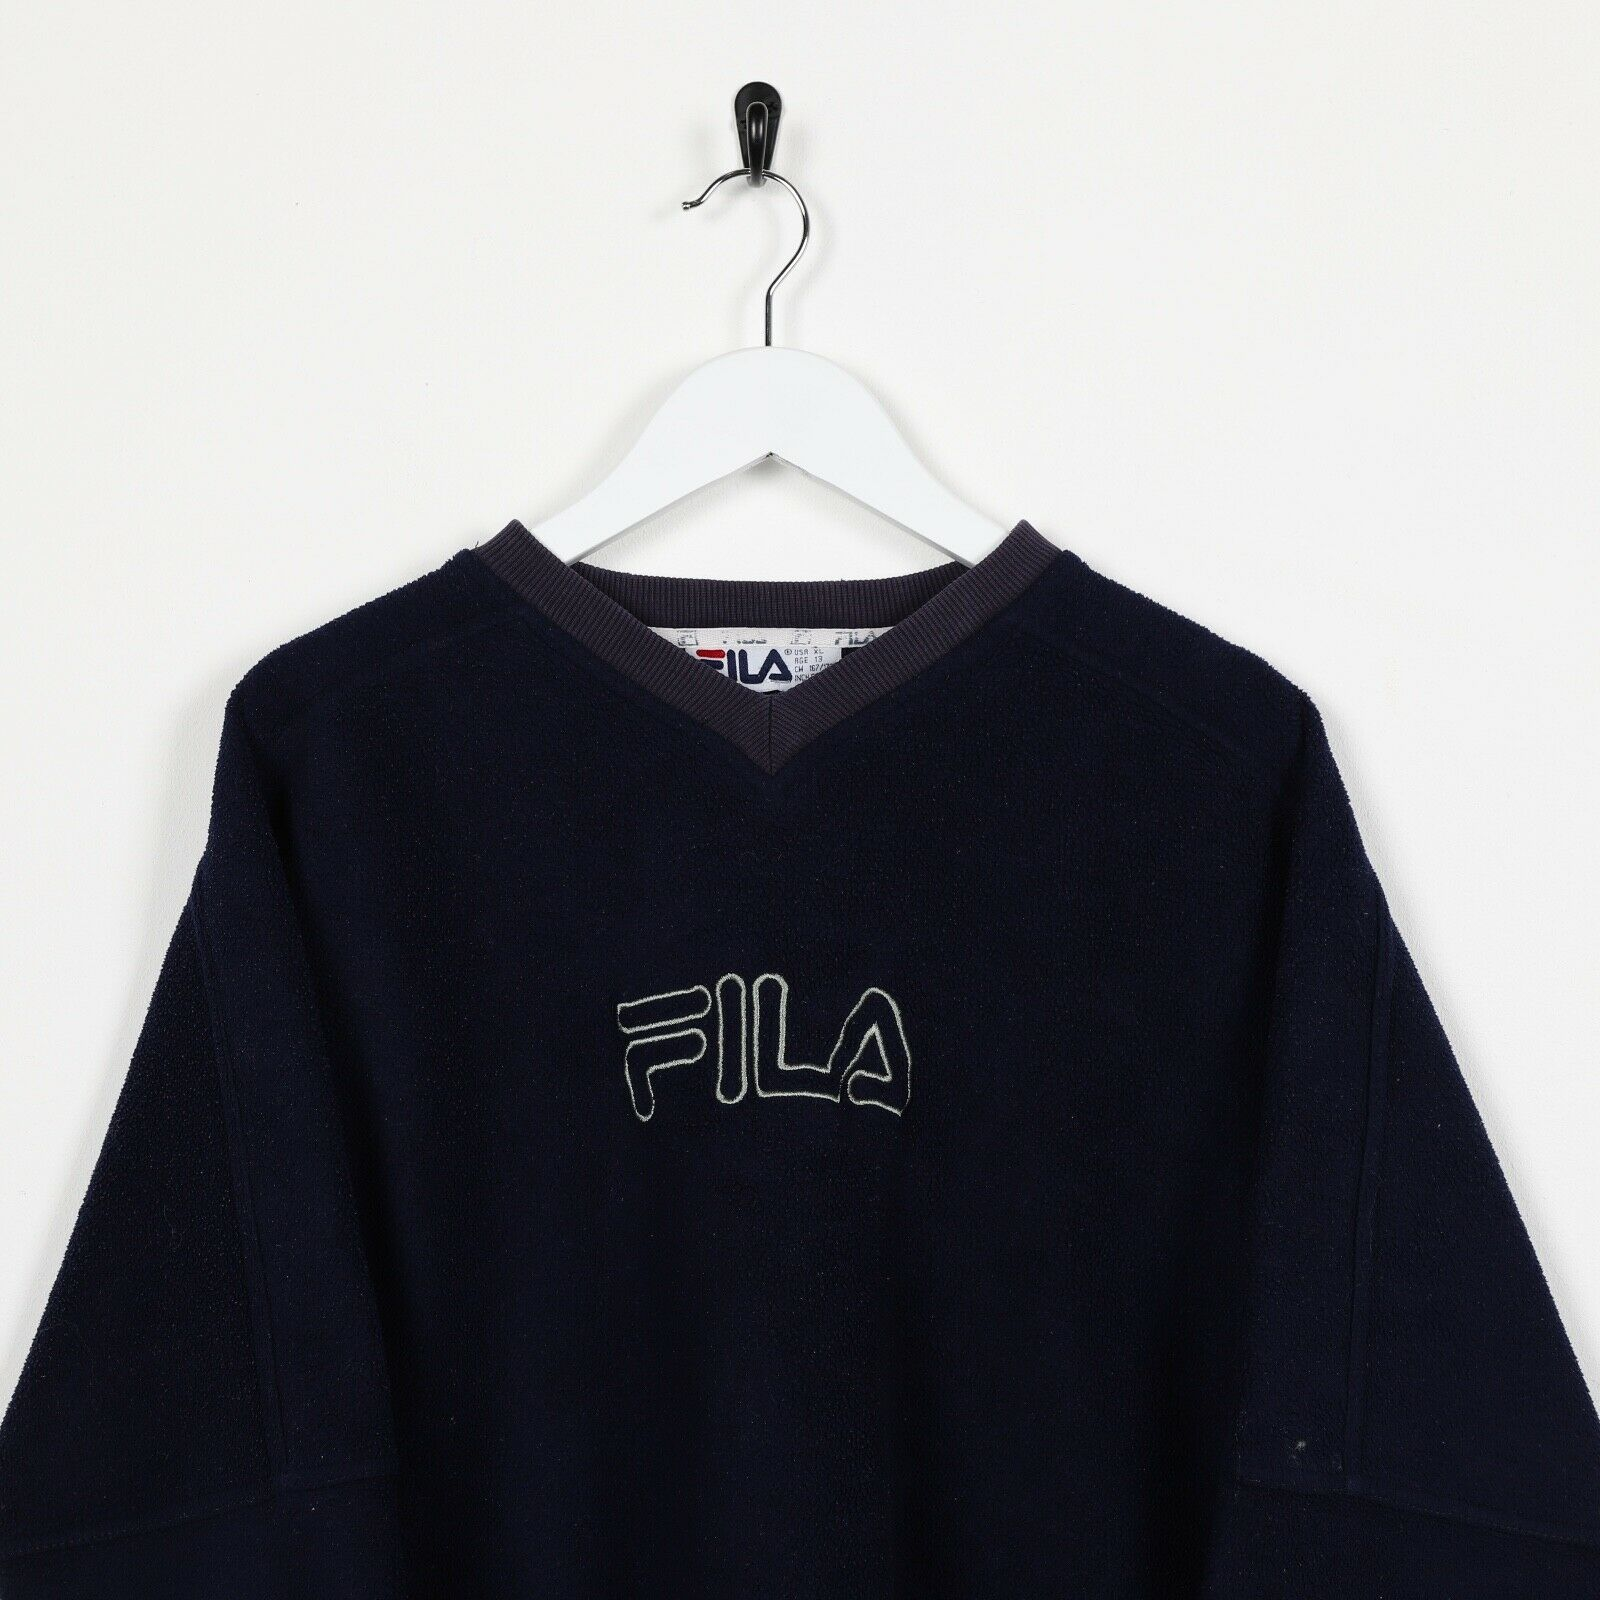 Vintage FILA Spell Out Fleece Sweatshirt Top Navy Blue Medium M